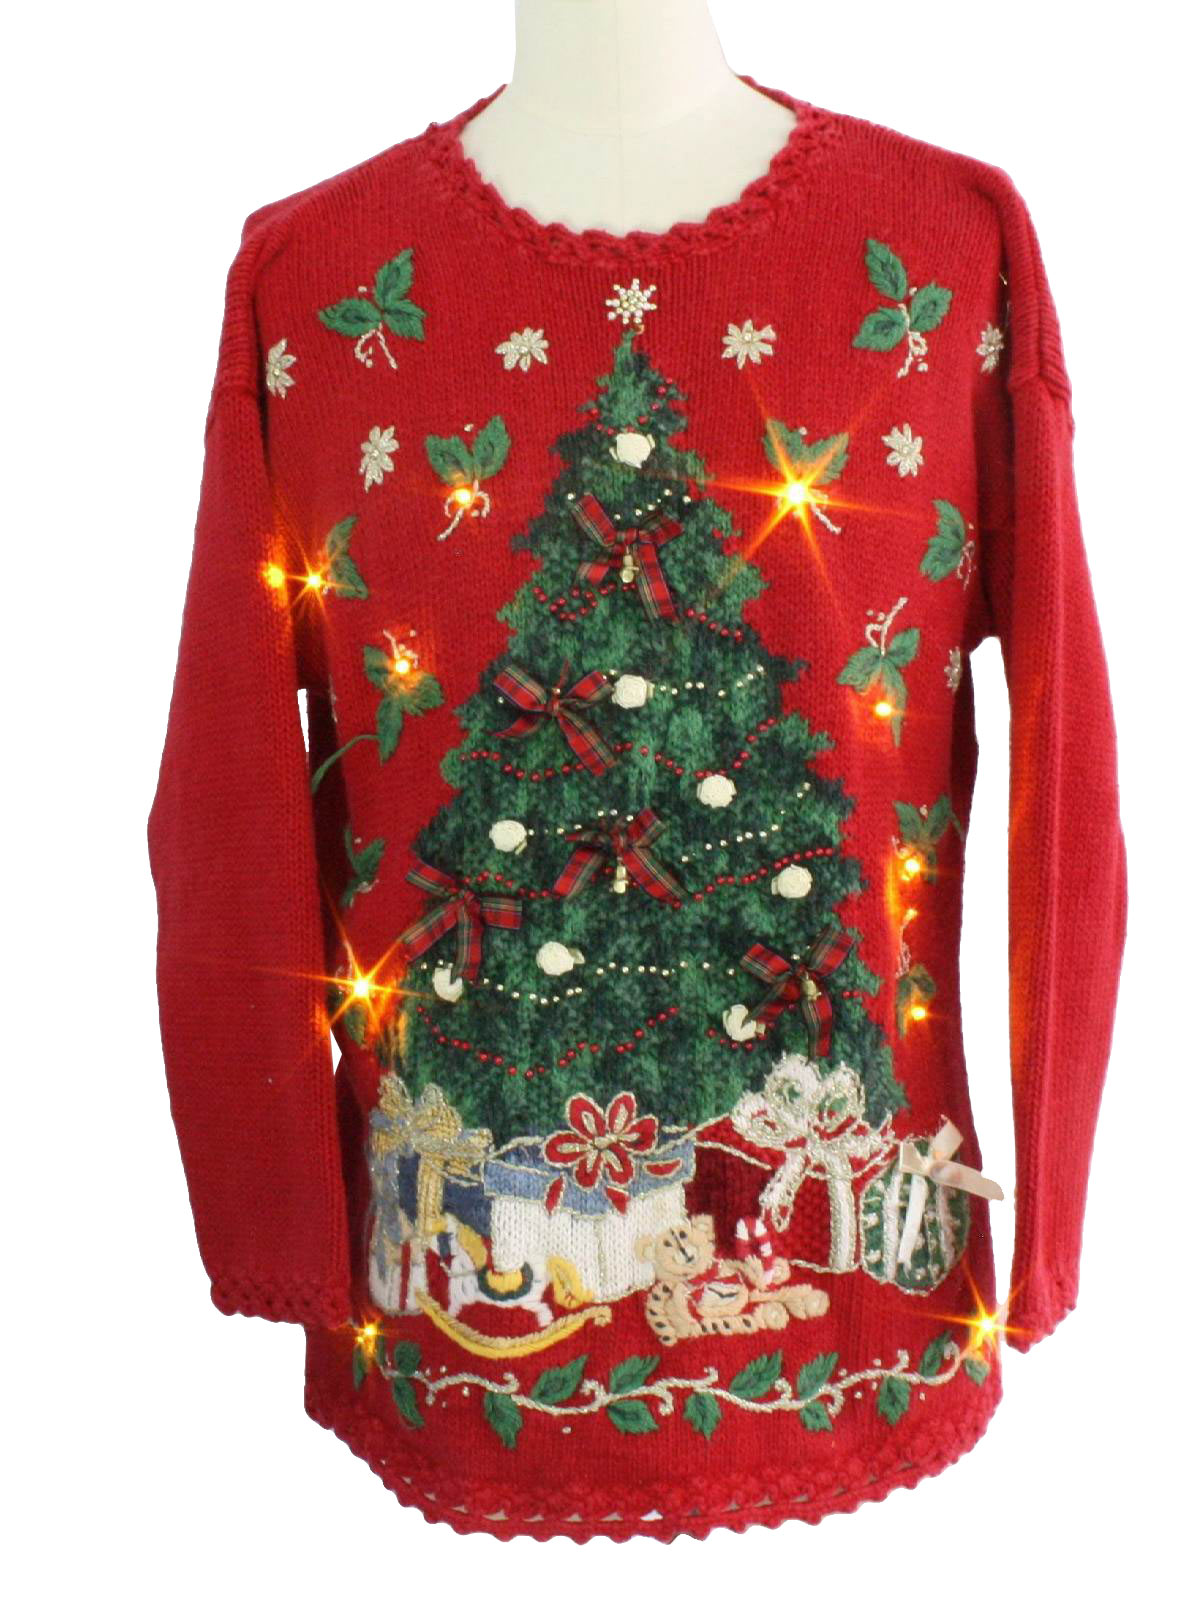 Light Up Christmas Sweater, Mens Ugly Christmas Sweater, Ugly Sweater Party, Best Christmas Sweaters, Christmas Jumpers, Christmas Time, Christmas Ideas, Sweater Outfits, Men Sweater Find this Pin and more on Xmas by Paula Riek.